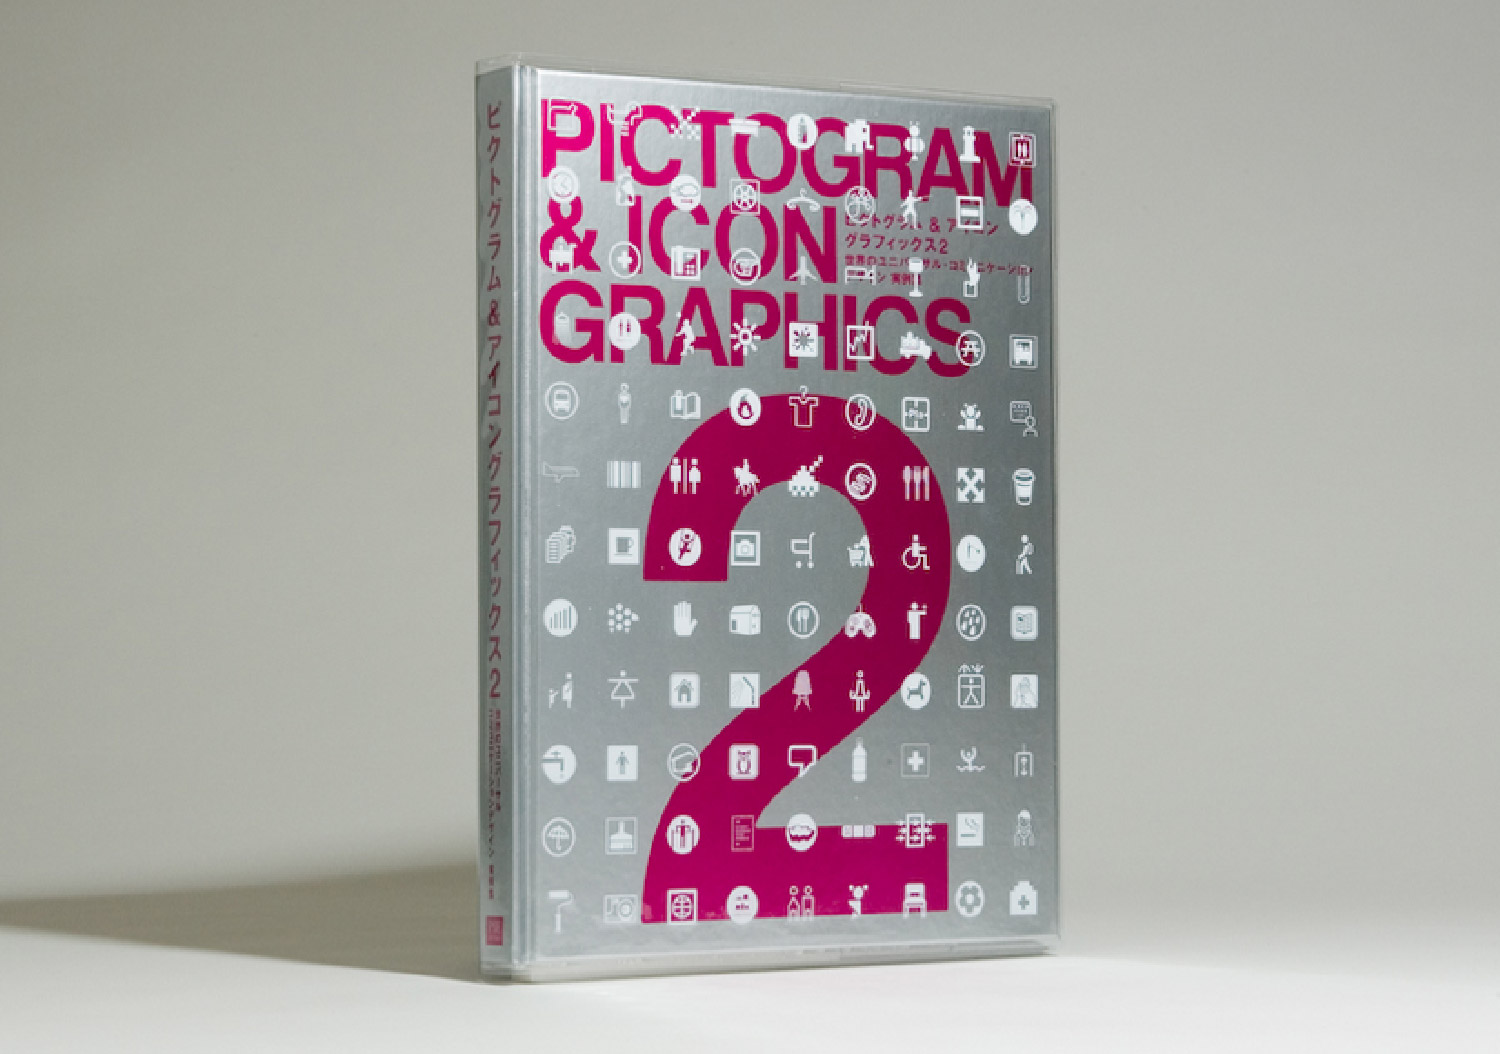 PICTOGRAM & ICON GRAPHICS 2_1